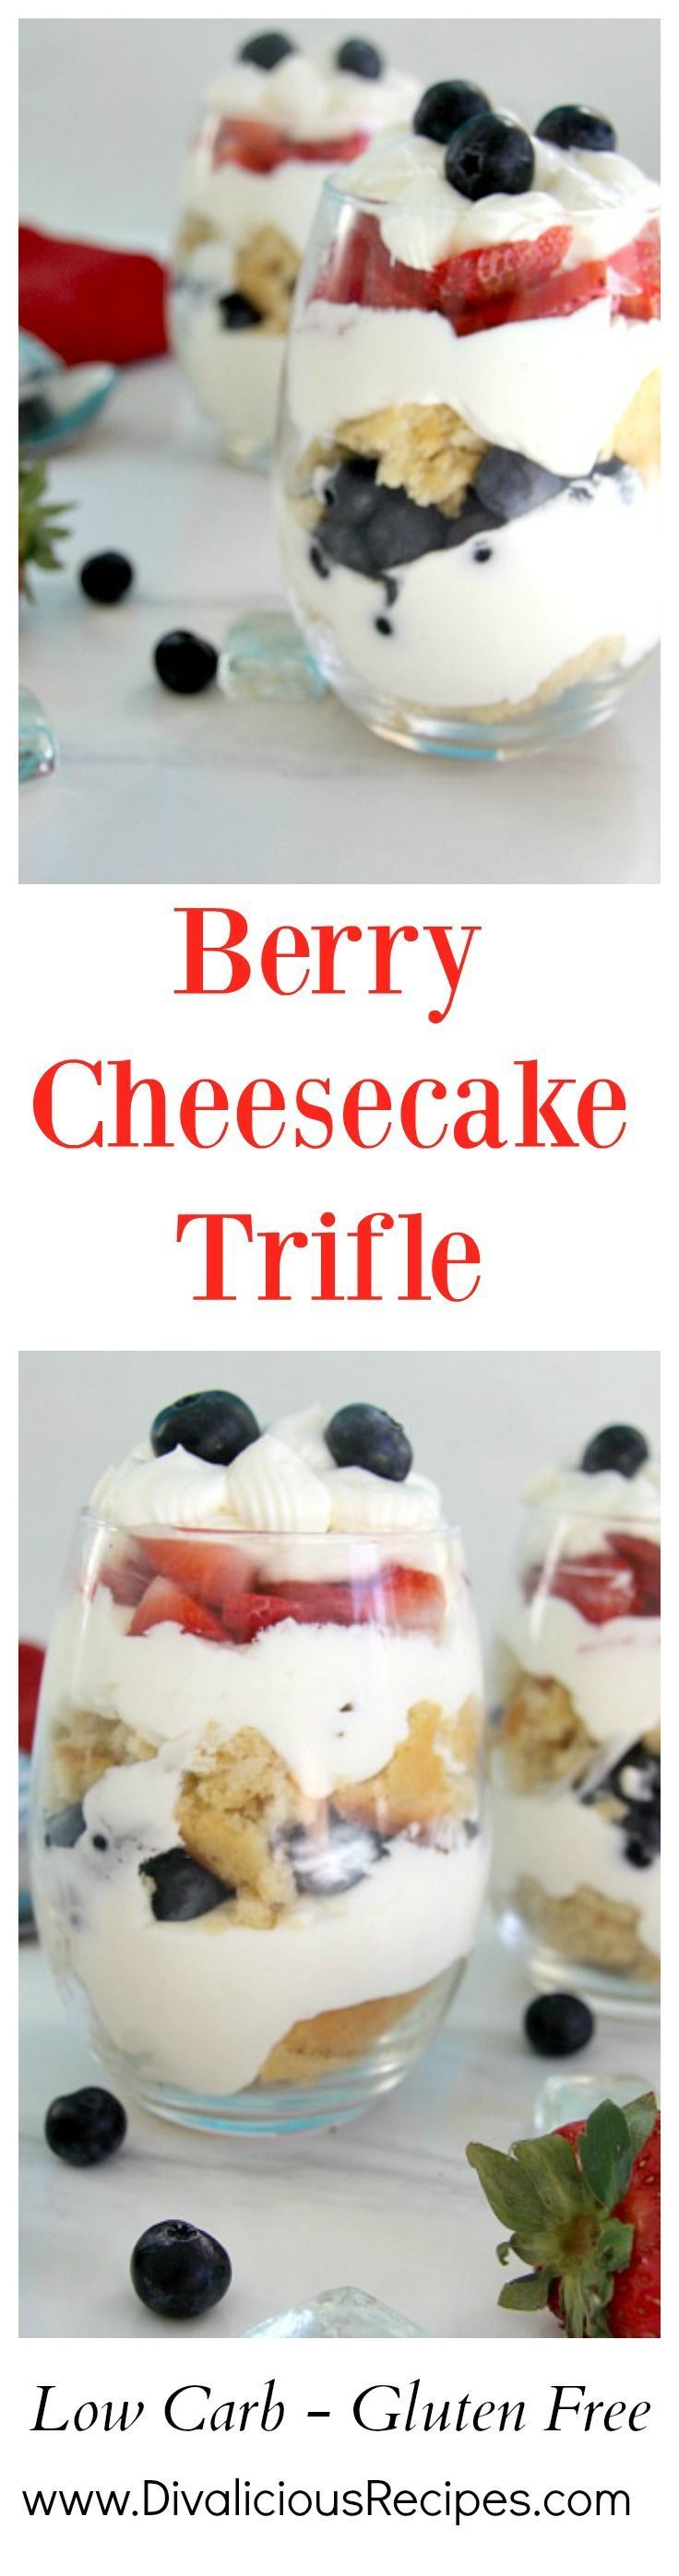 A simple low carb and gluten free dessert made with berries cheesecake and coconut blon s